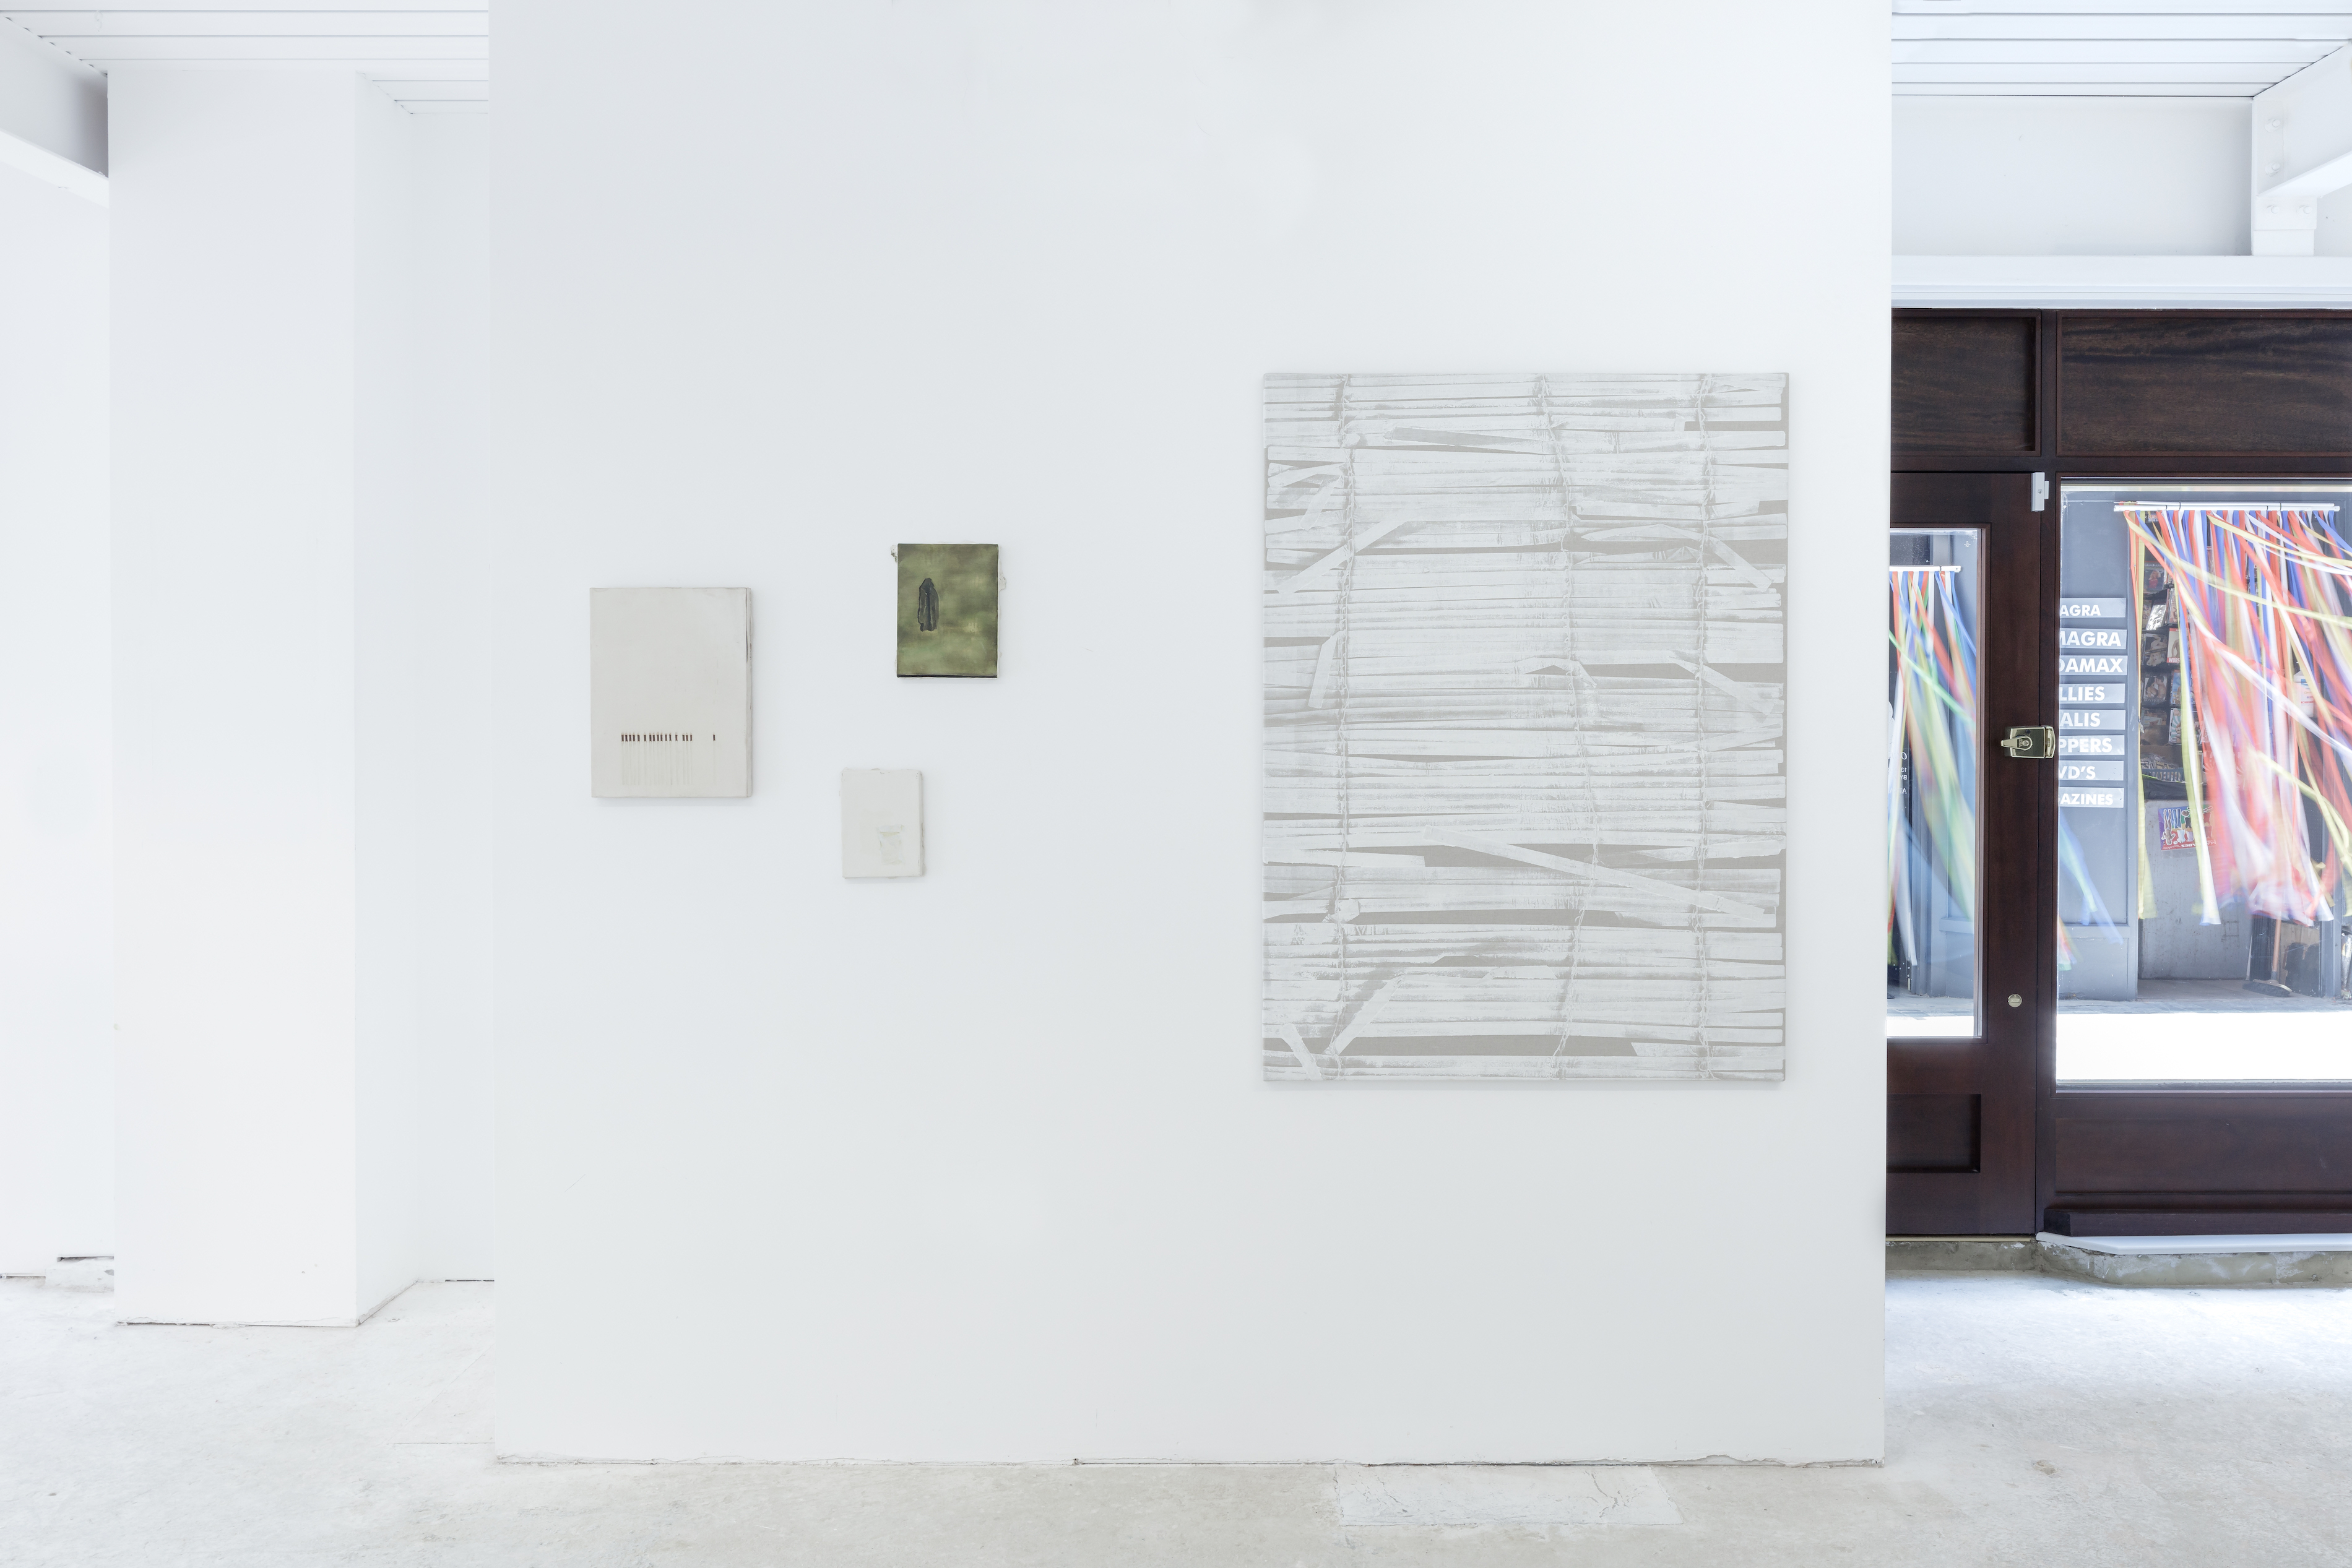 Installation View, Oceans of Milk, 2021, London, Courtesy of the gallery, Photos by James Retief